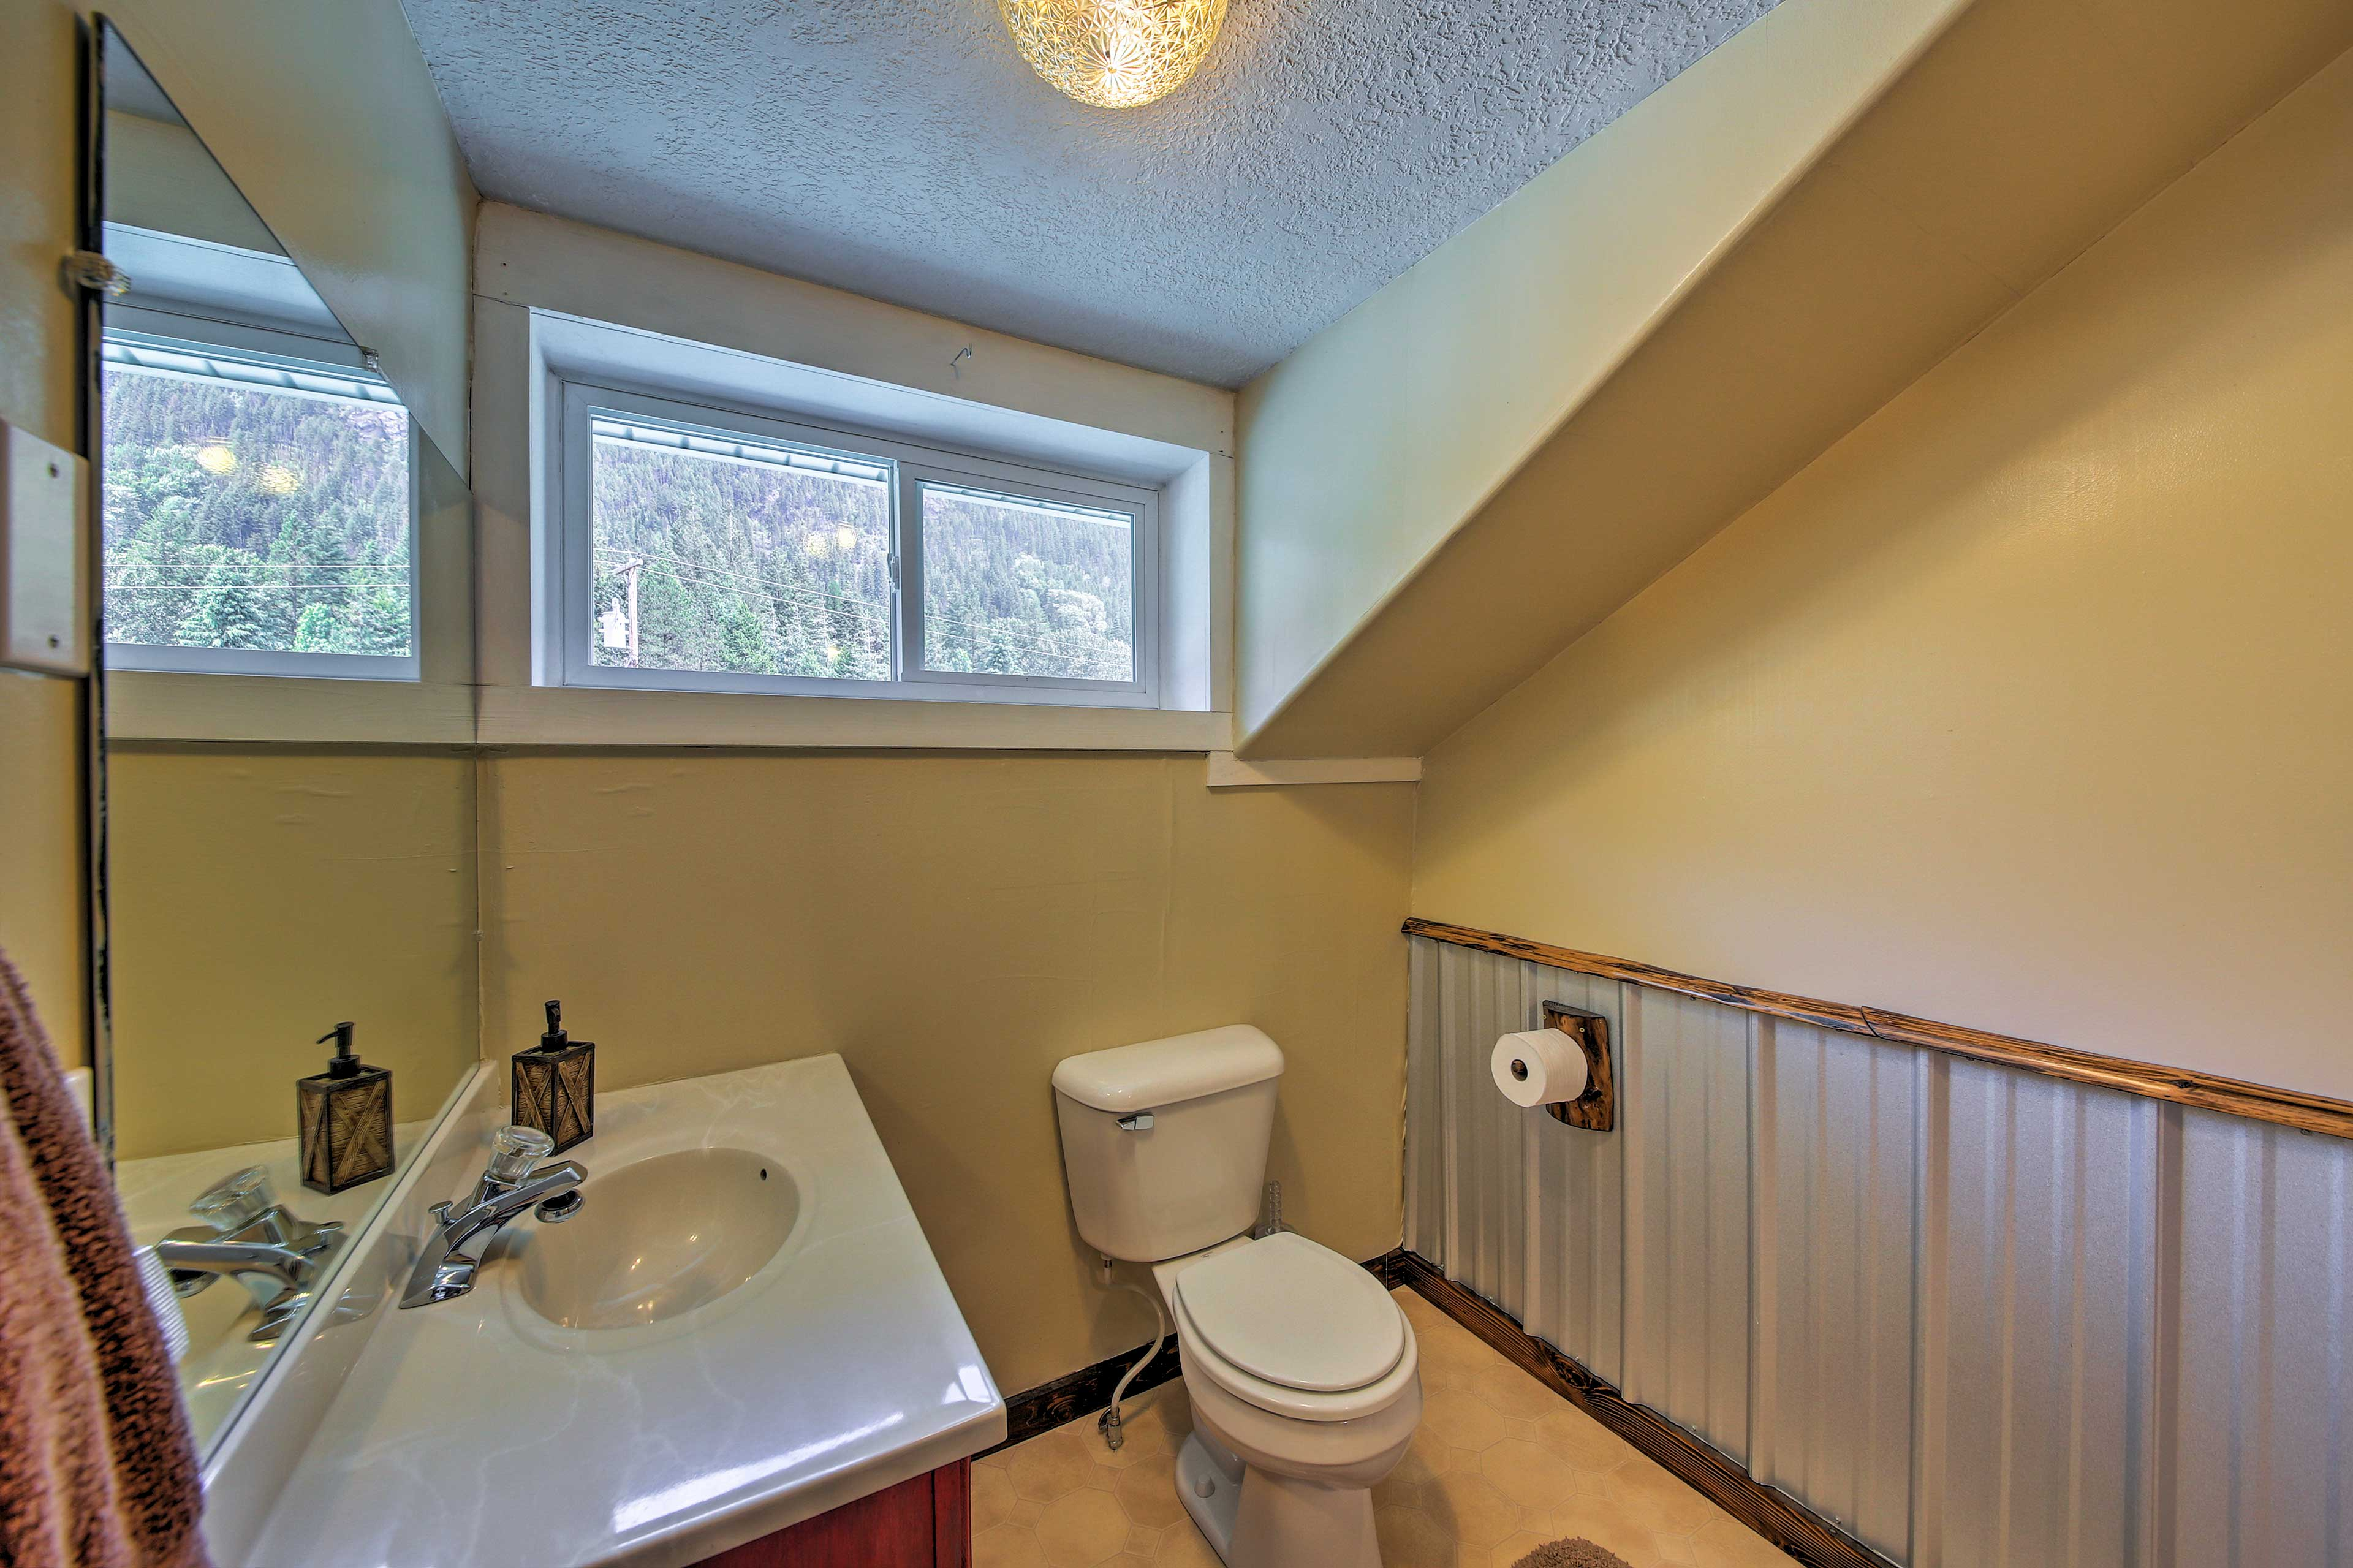 Morning routines will be a breeze with so many bathrooms to choose from.